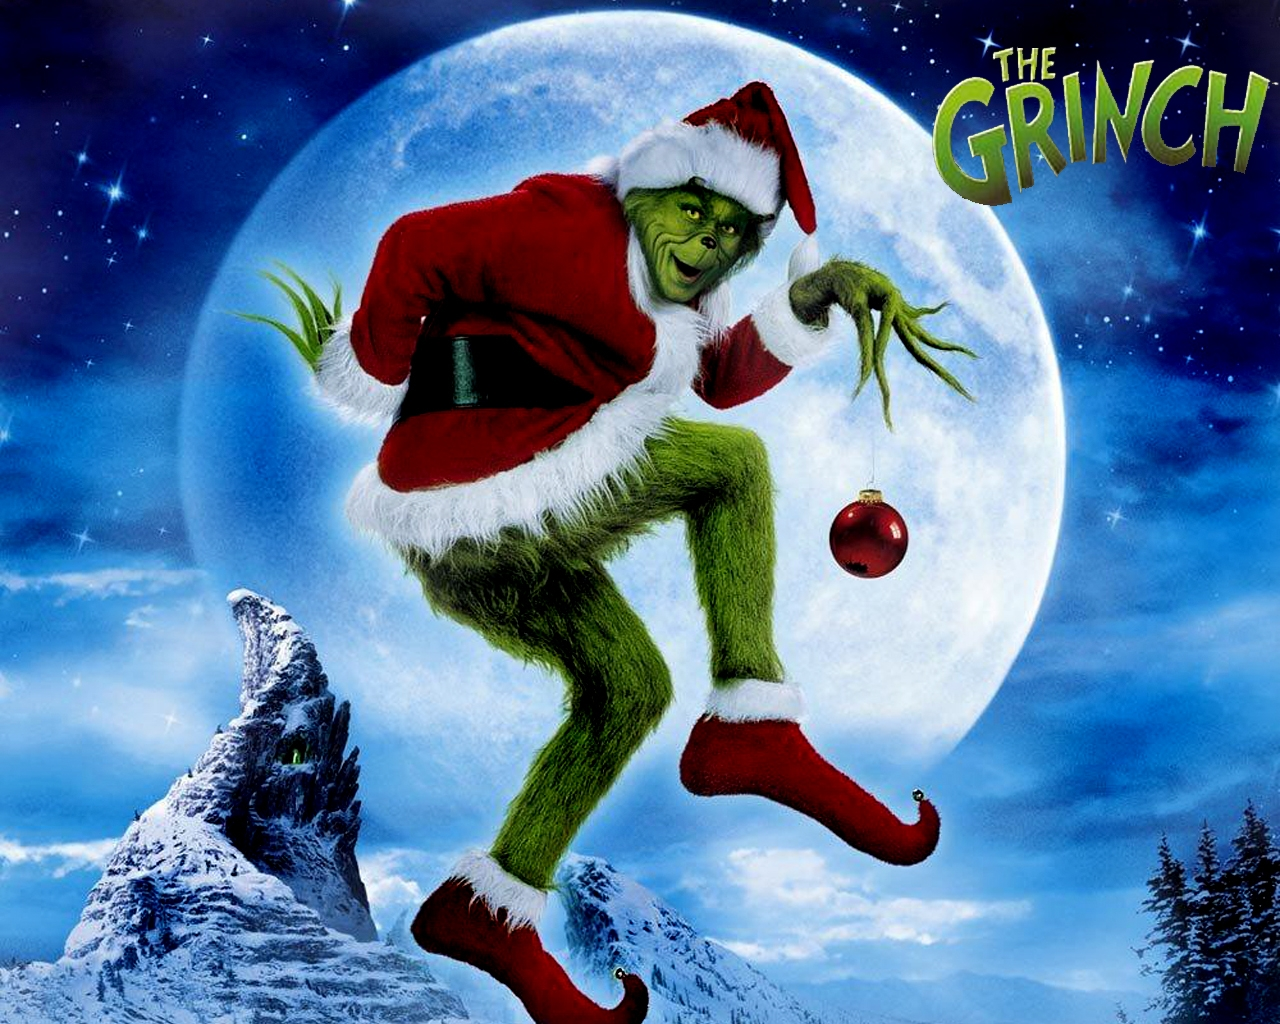 How the Grinch Stole Christmas Wallpapers   4 1280x1024